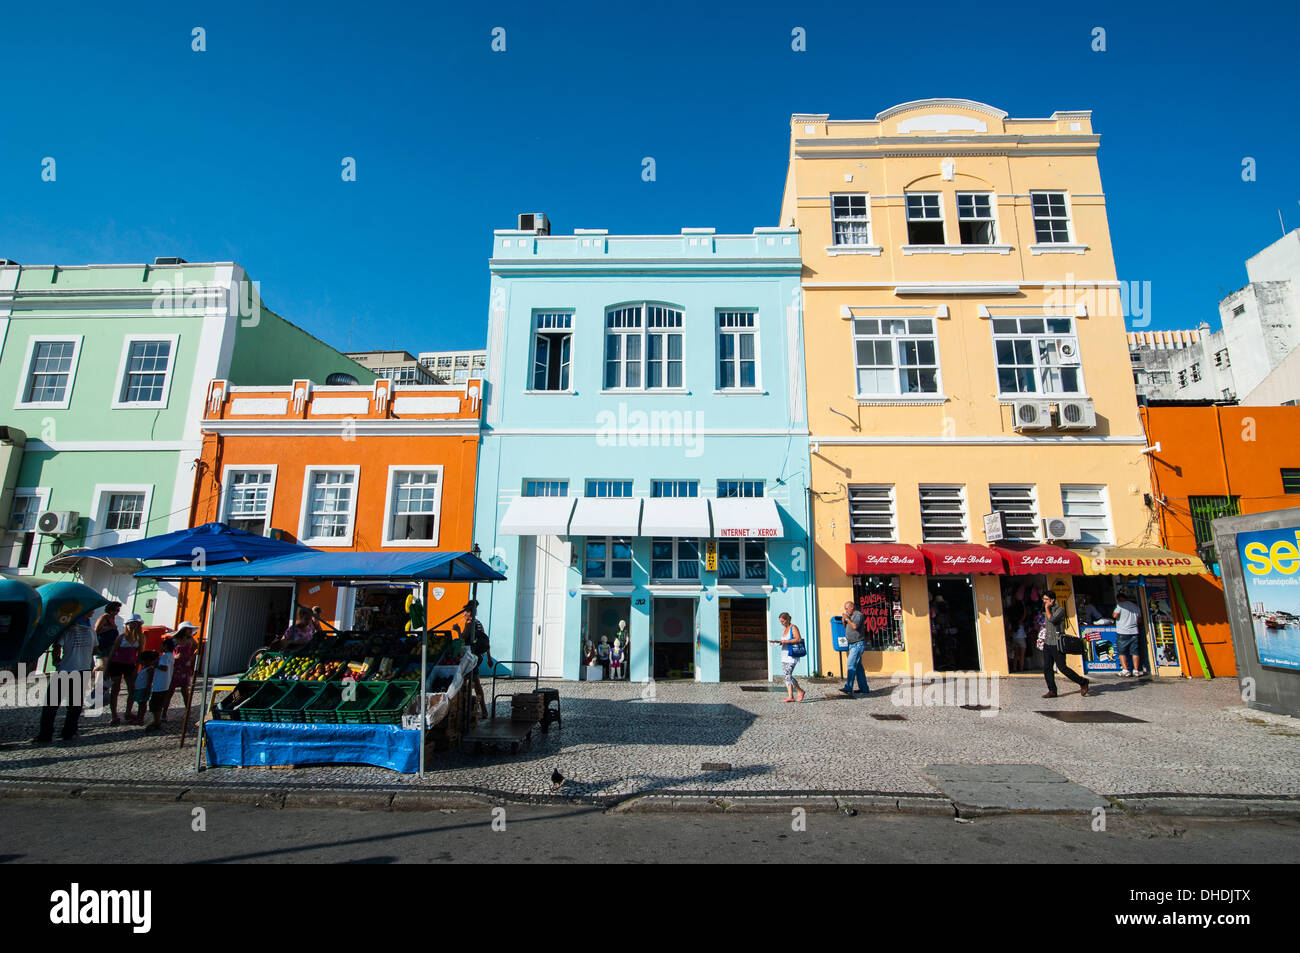 Colourful houses in Florianopolis, Santa Catarina State, Brazil - Stock Image